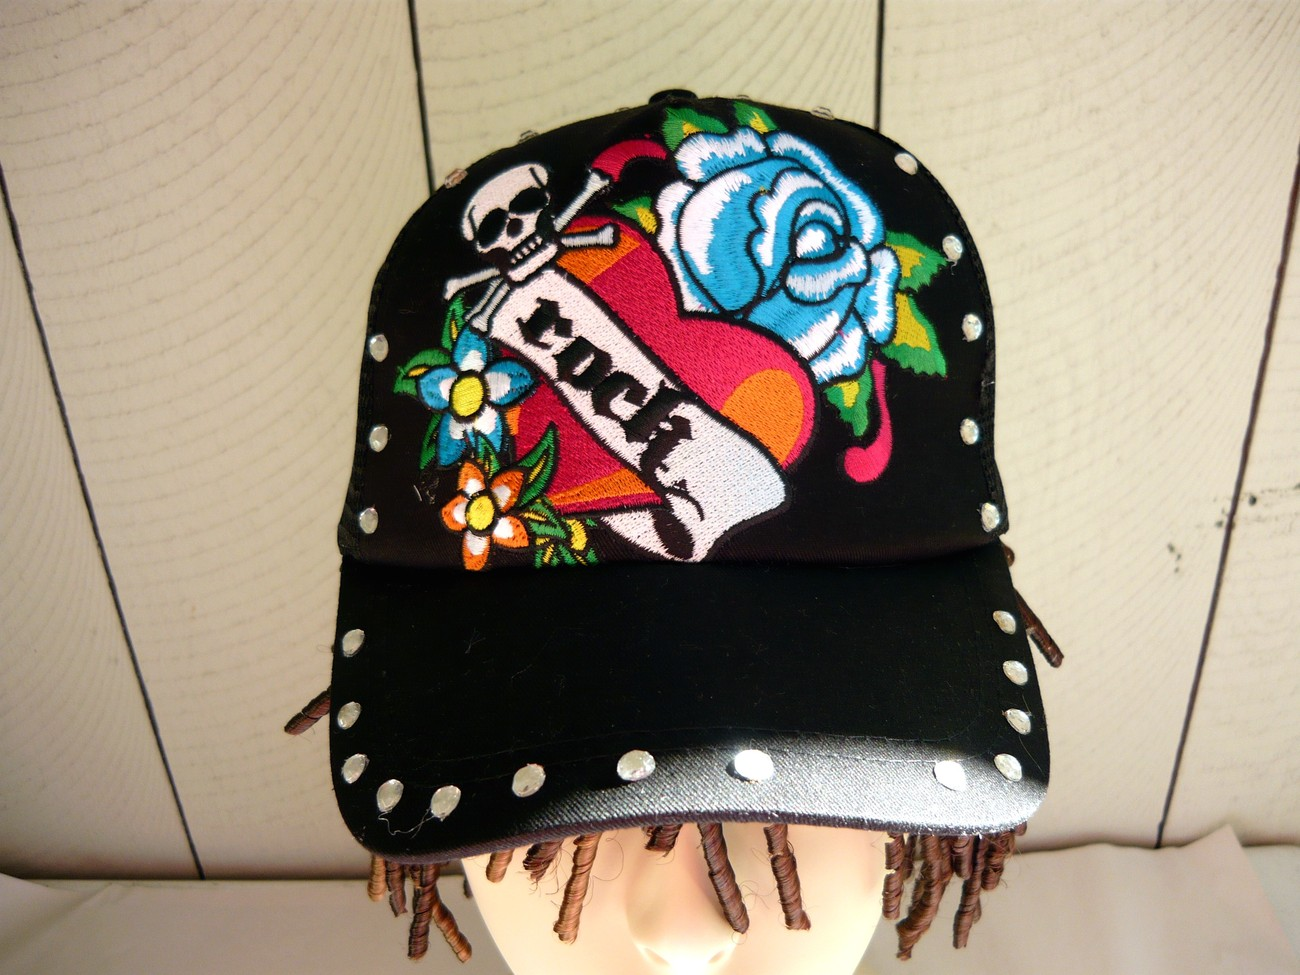 Scull / Rose/ Rock Embroidery Ball Cap